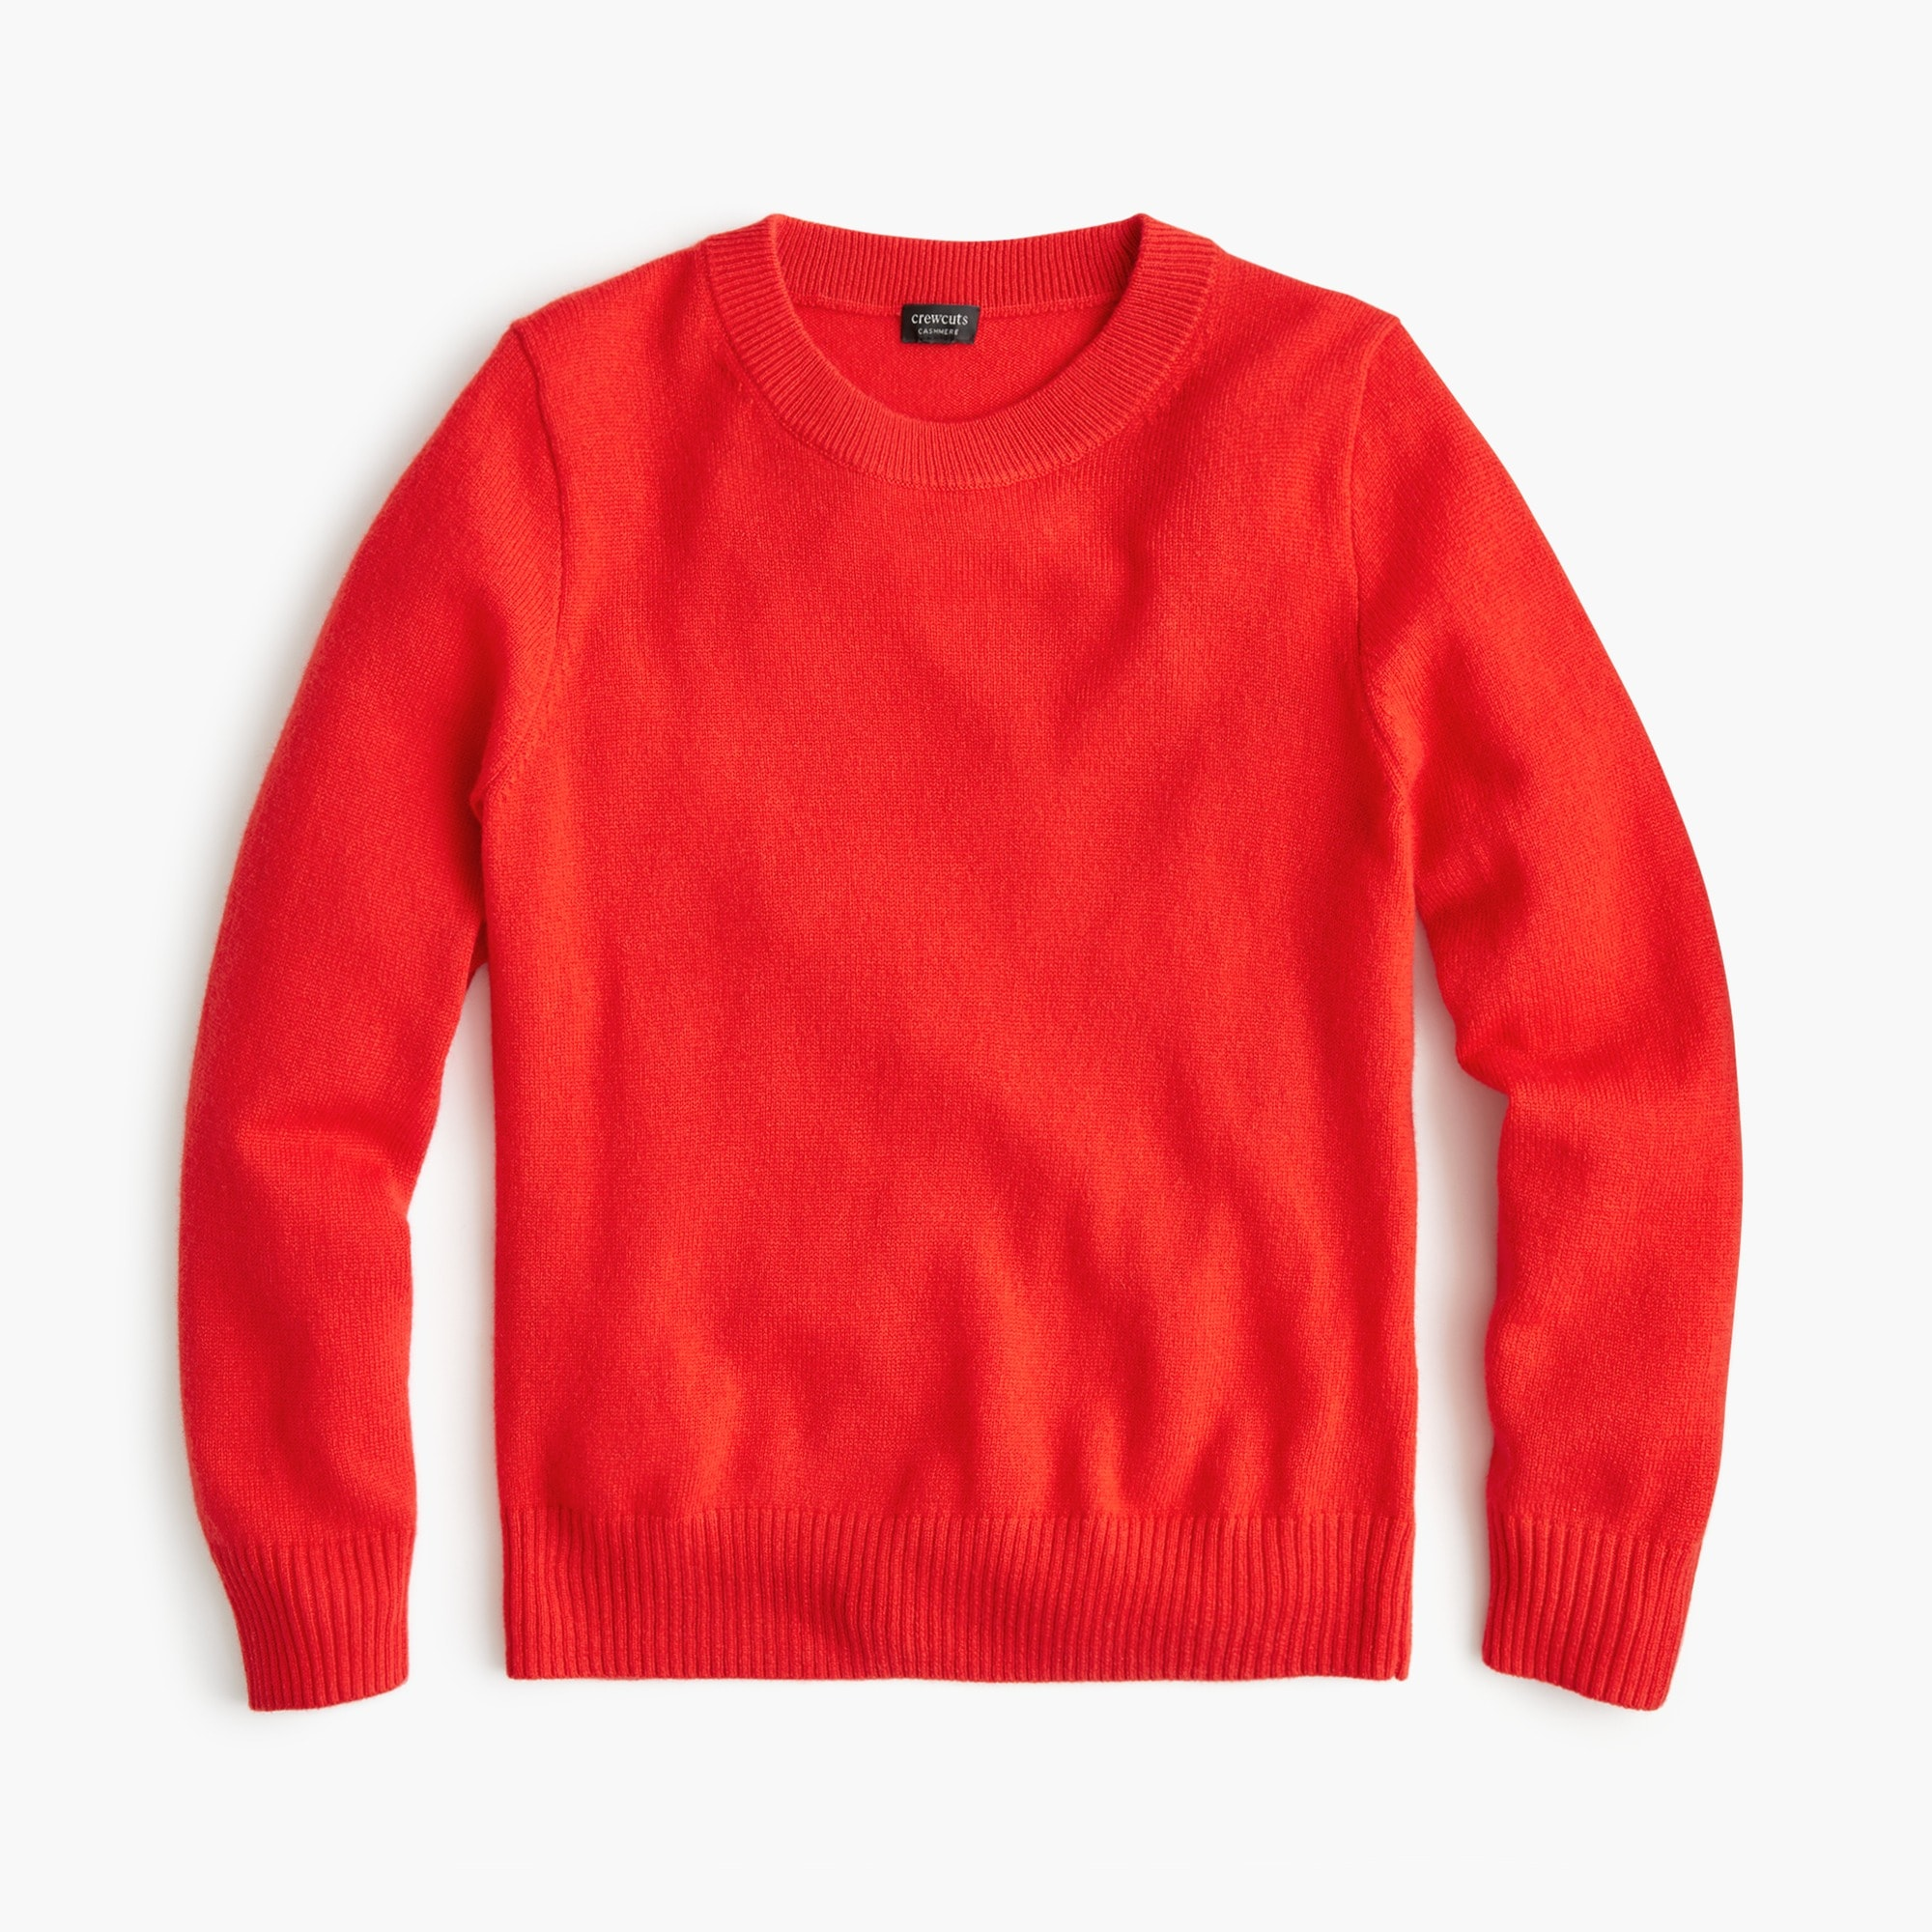 boys Kids' cashmere crewneck sweater